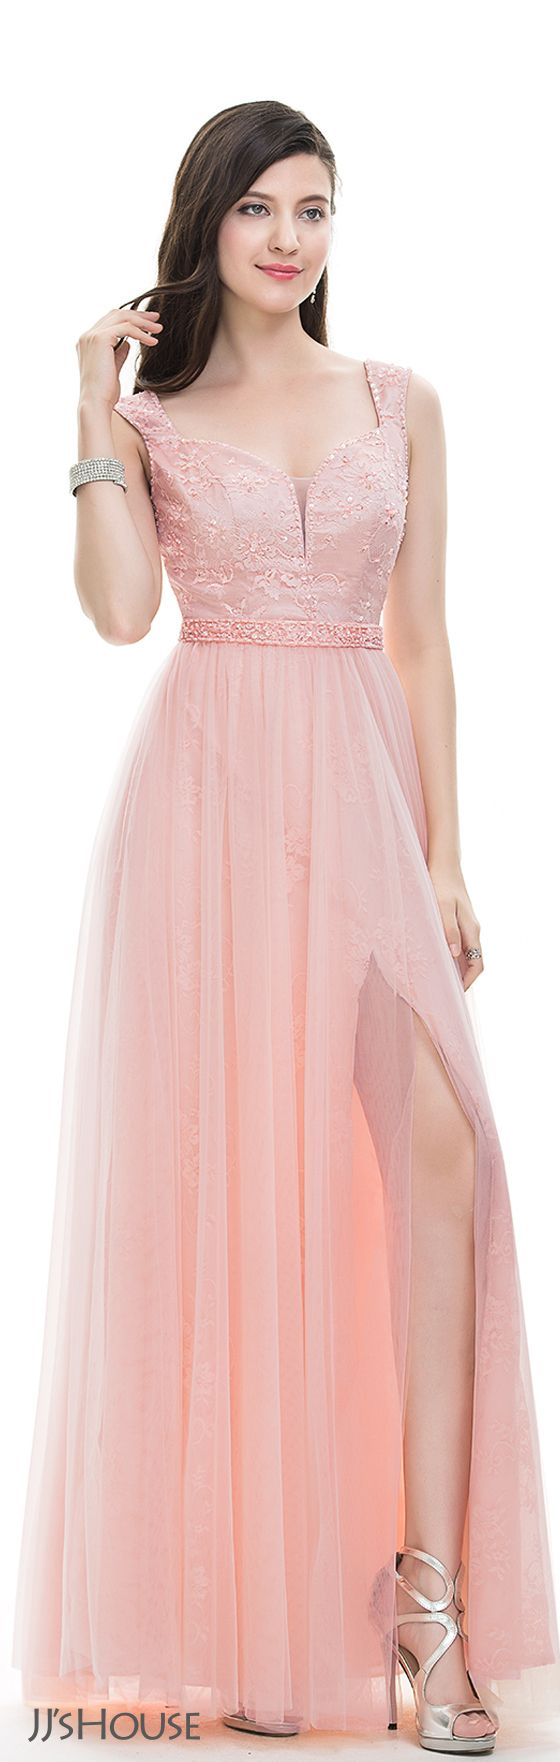 A-Line/Princess Sweetheart Floor-Length Tulle Prom Dresses With ...